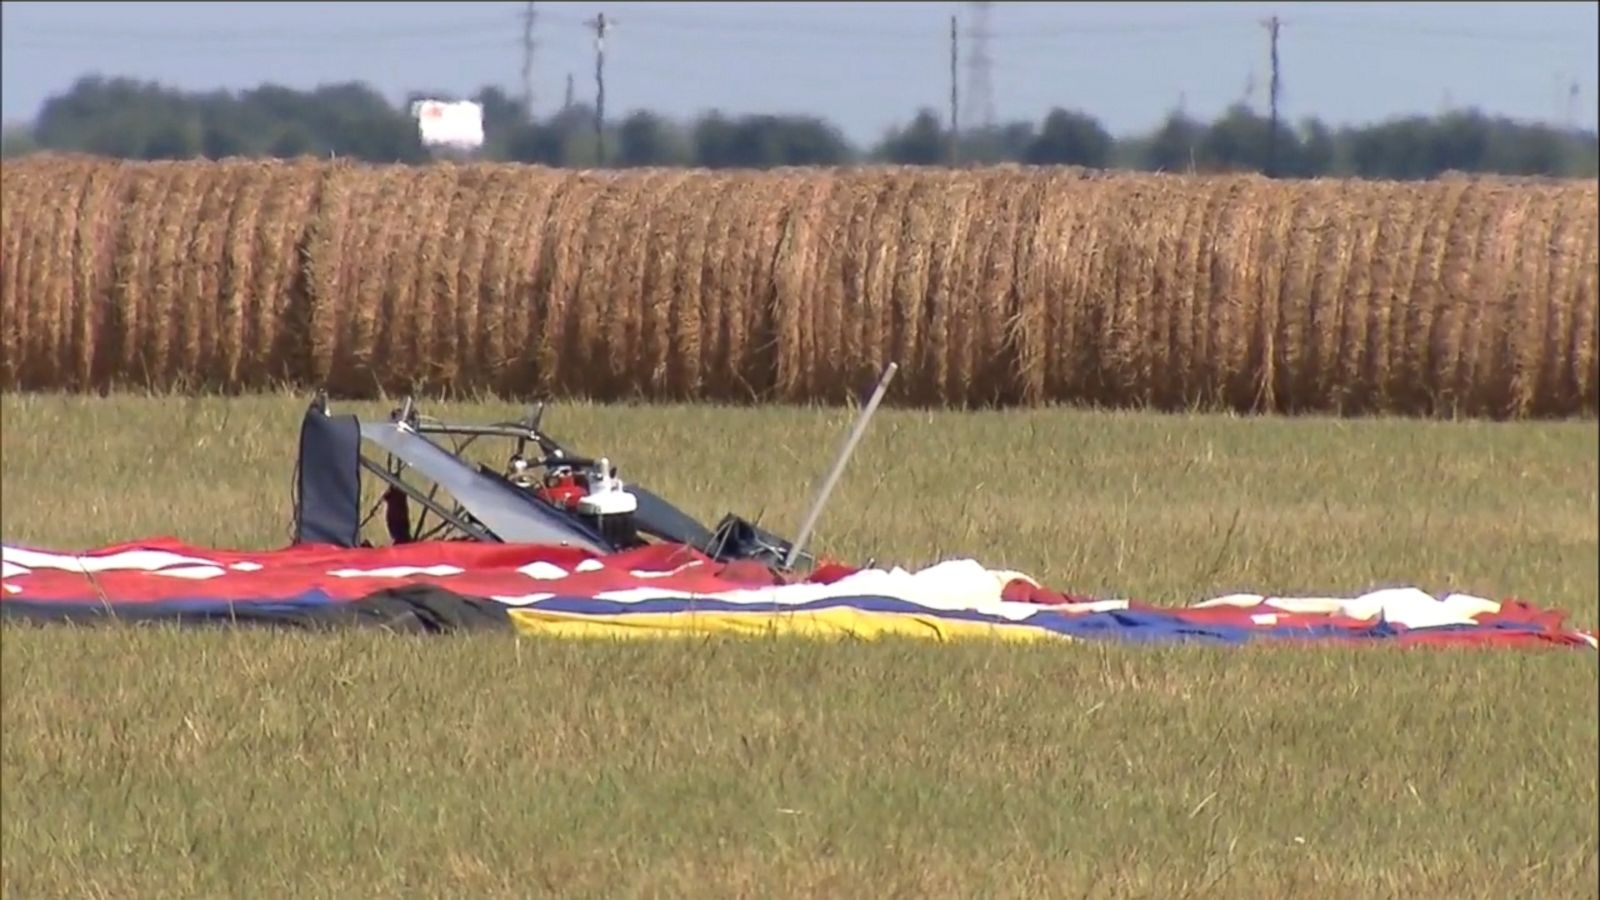 """In the early hours of July 30, Alfred """"Skip"""" Nichols was piloting a hot air balloon near Lockhart, Texas, with 15 passengers on board, when the balloon ultimately crashed into a field after striking high-voltage power lines."""